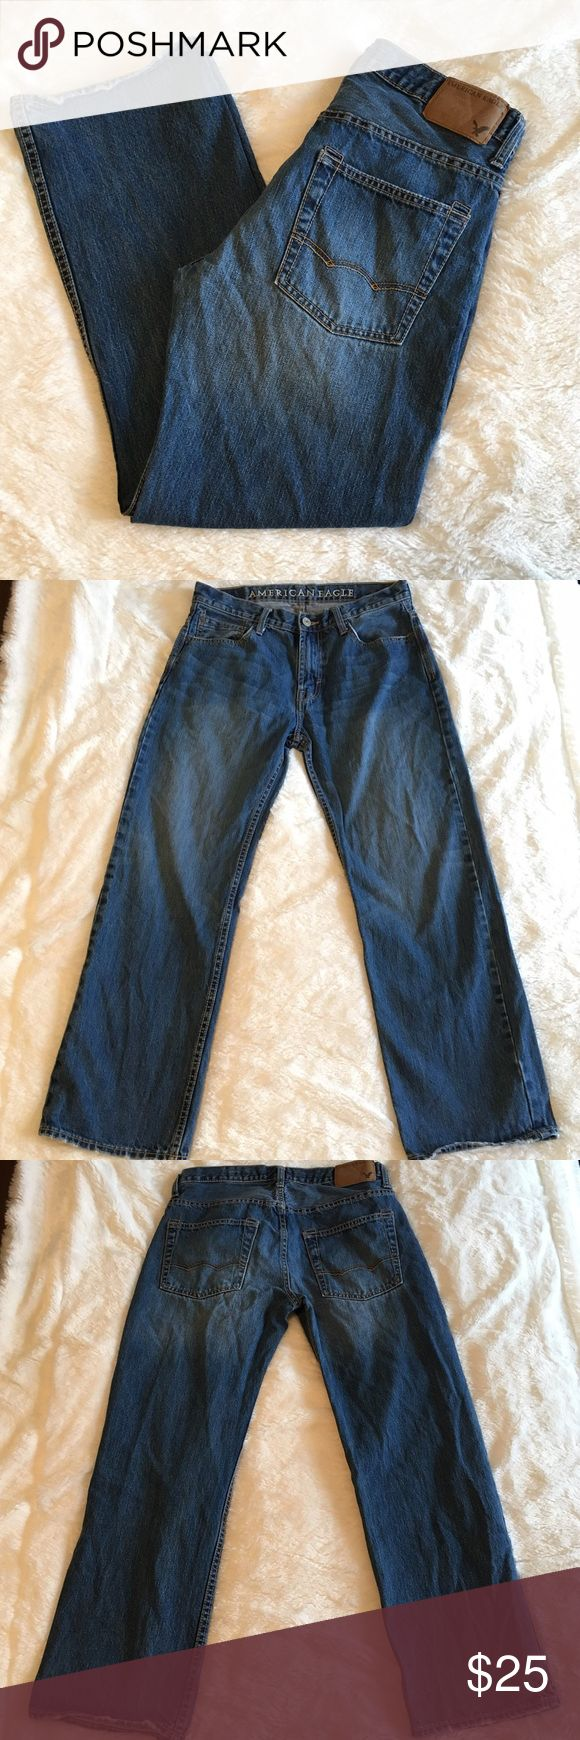 🆕Listing! Men's American Eagle Low & Loose Jeans Men's American Eagle Low and Loose Jeans. In great preloved condition. Minor fraying at hem. All else in excellent shape. Size 30x30. 100% cotton. American Eagle Outfitters Jeans Relaxed